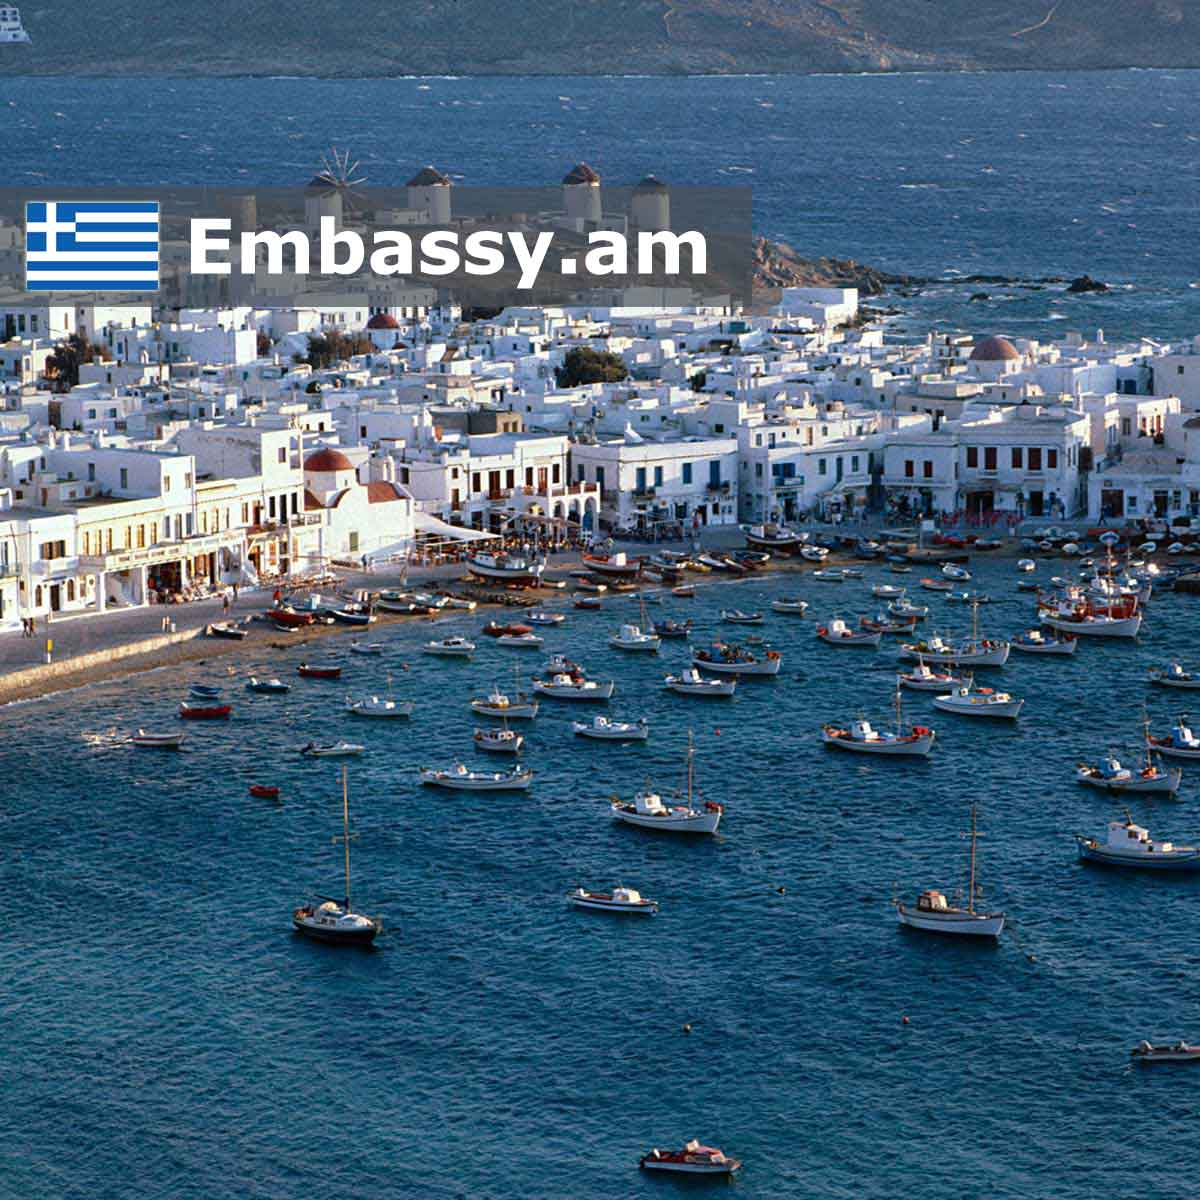 Mykonos - Hotels in Greece - Embassy.am